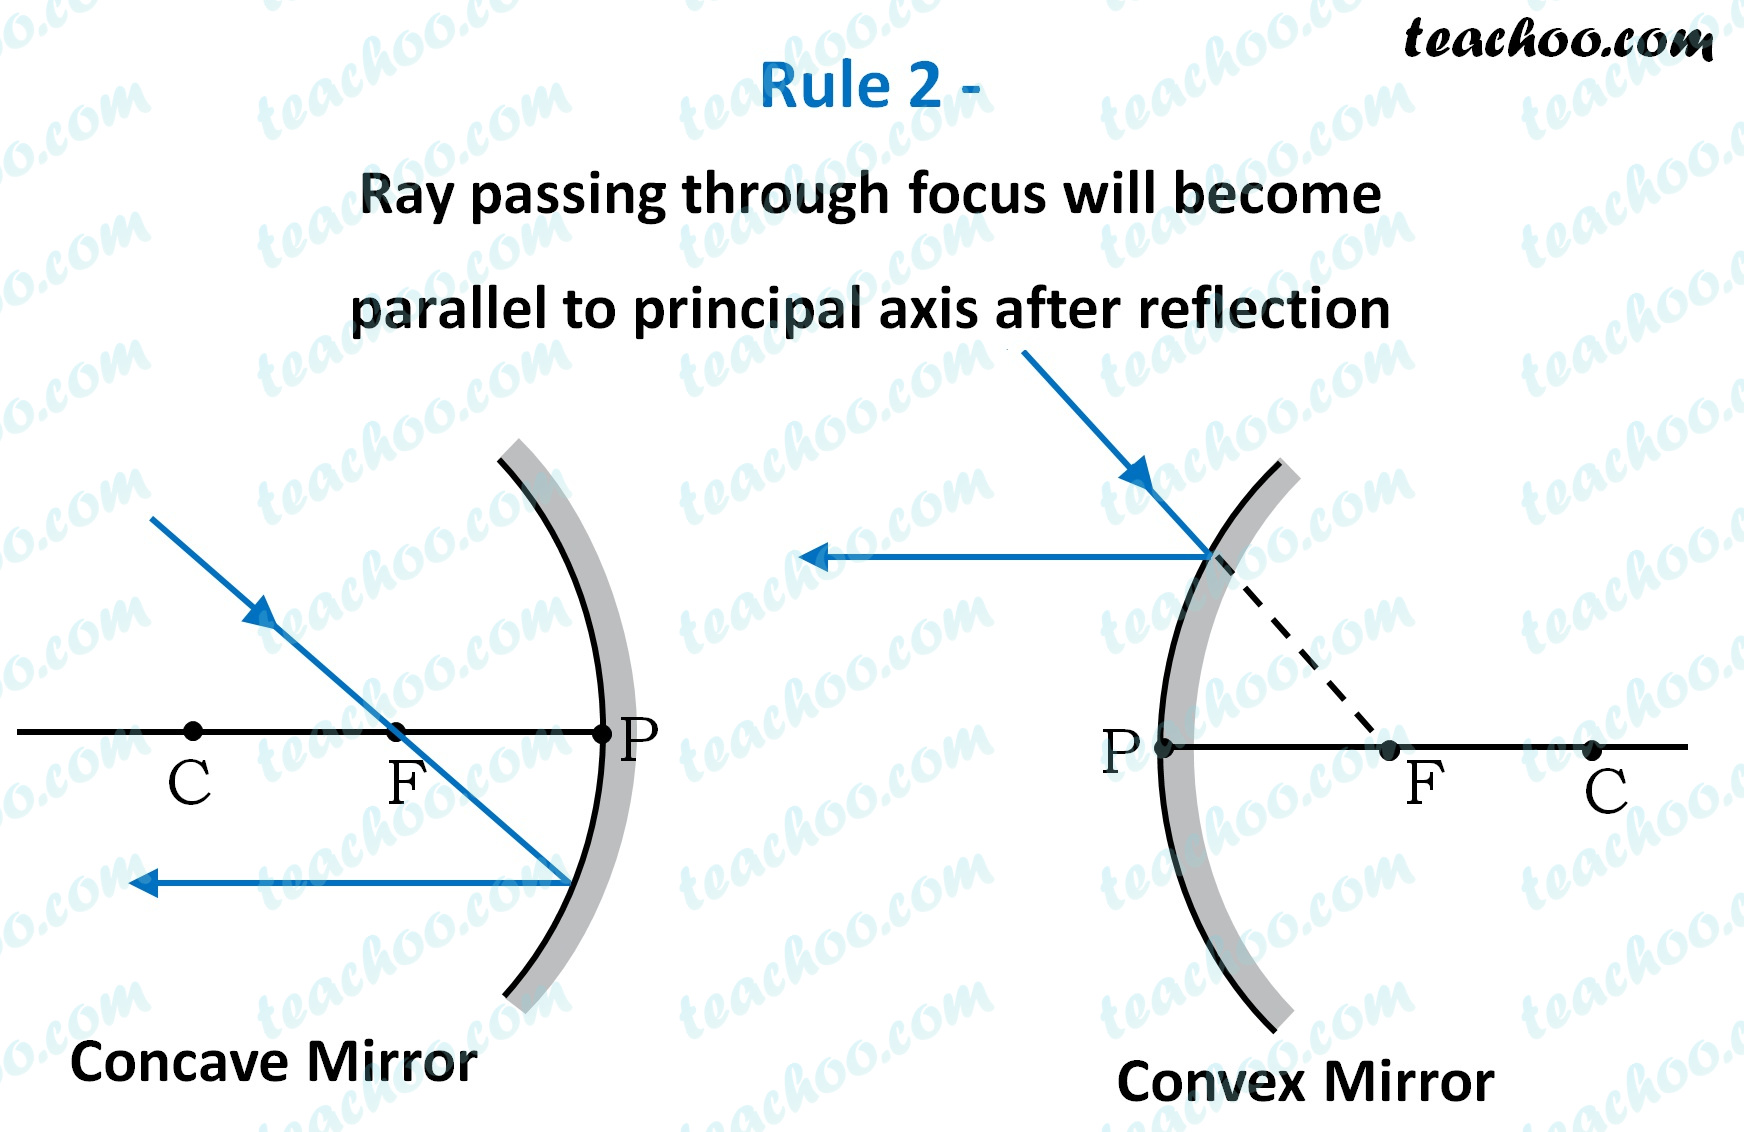 rule-2---ray-passing-through-focus-will-become-parallel--teachoo.jpg